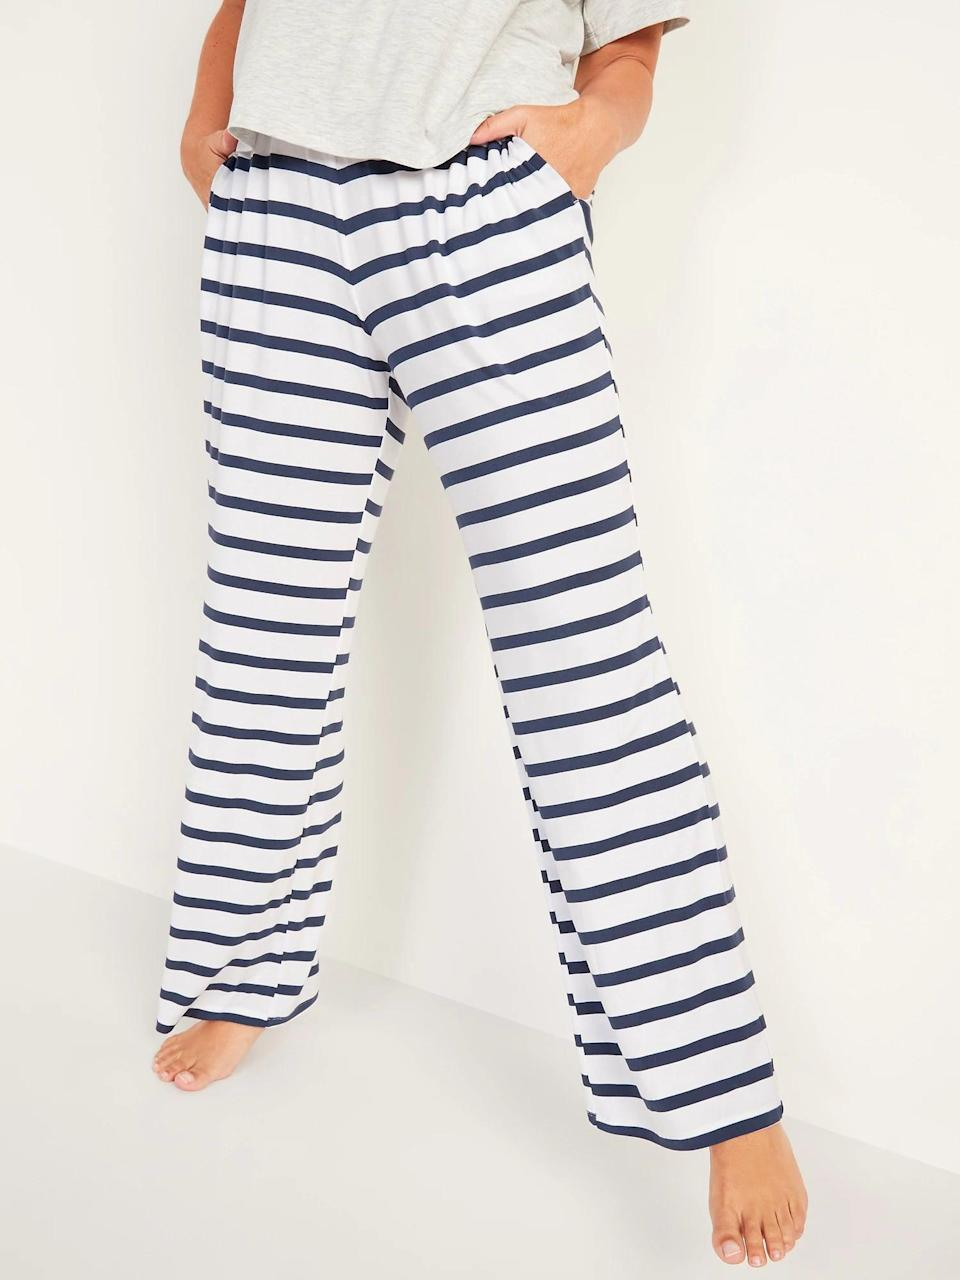 <p>When you want traditional PJ bottoms, there are tons of patterns of these <span>Old Navy Mid-Rise Sunday Sleep Ultra-Soft Pajama Pants</span> ($10-$20, originally $20). They come in regular, tall, and petite lengths so you won't trip when you get up to go to the bathroom either.</p>